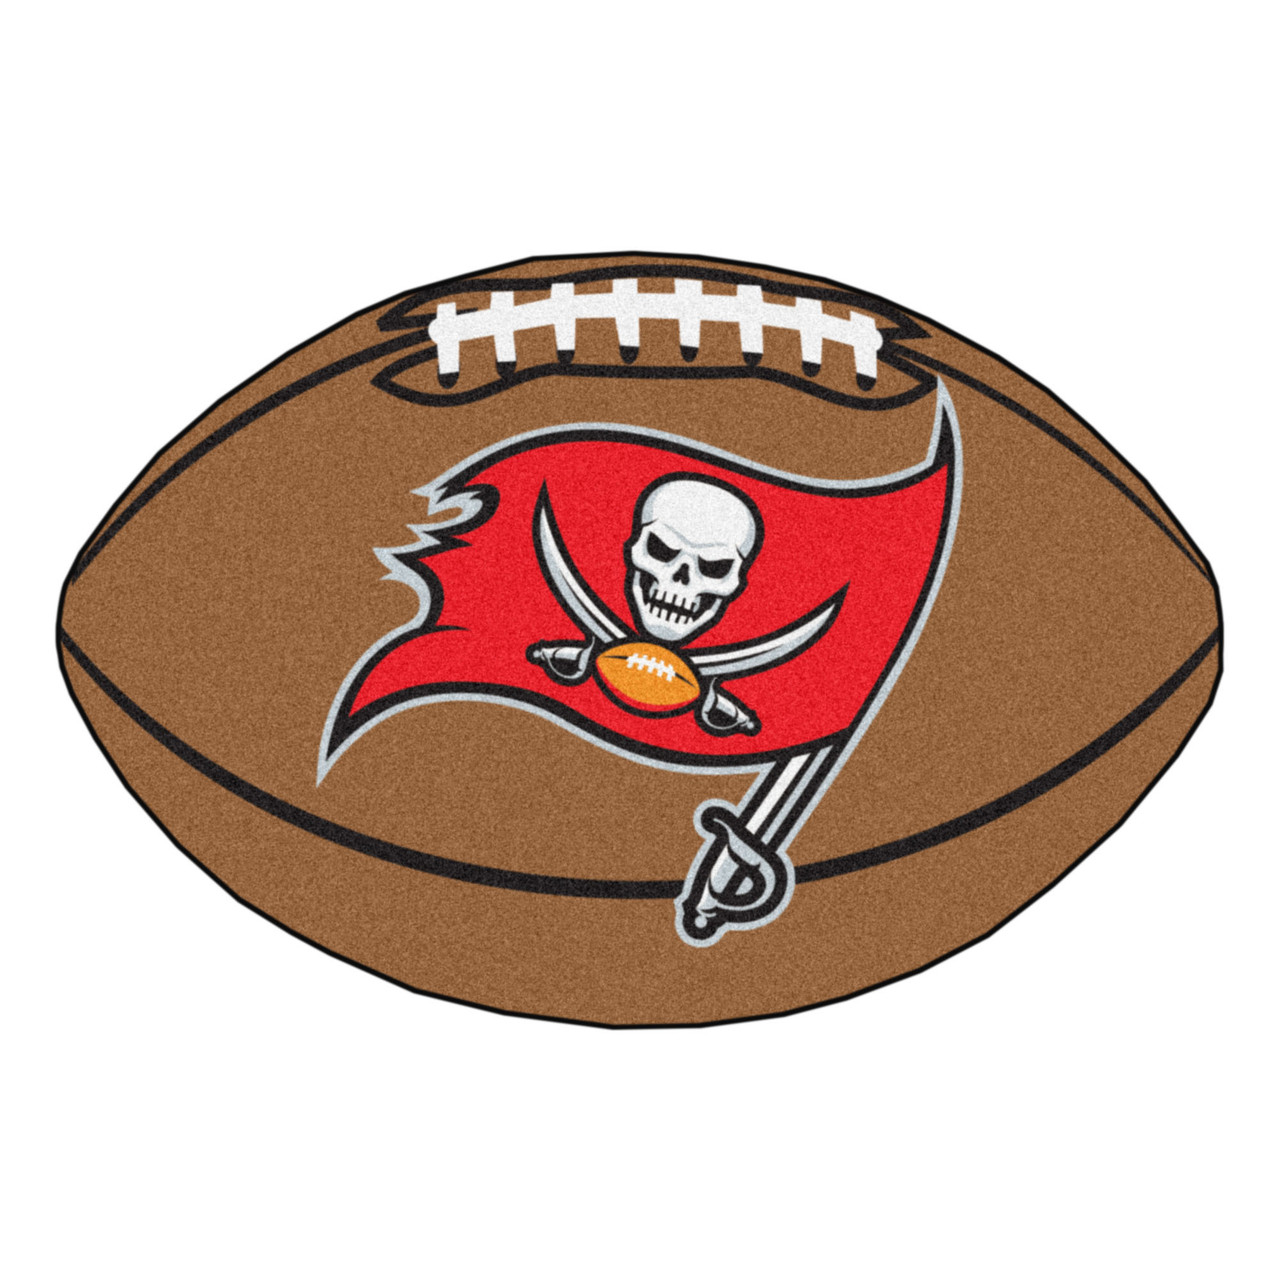 20 5 X 32 5 Brown Red Nfl Tampa Bay Buccaneers Football Mat Christmas Central